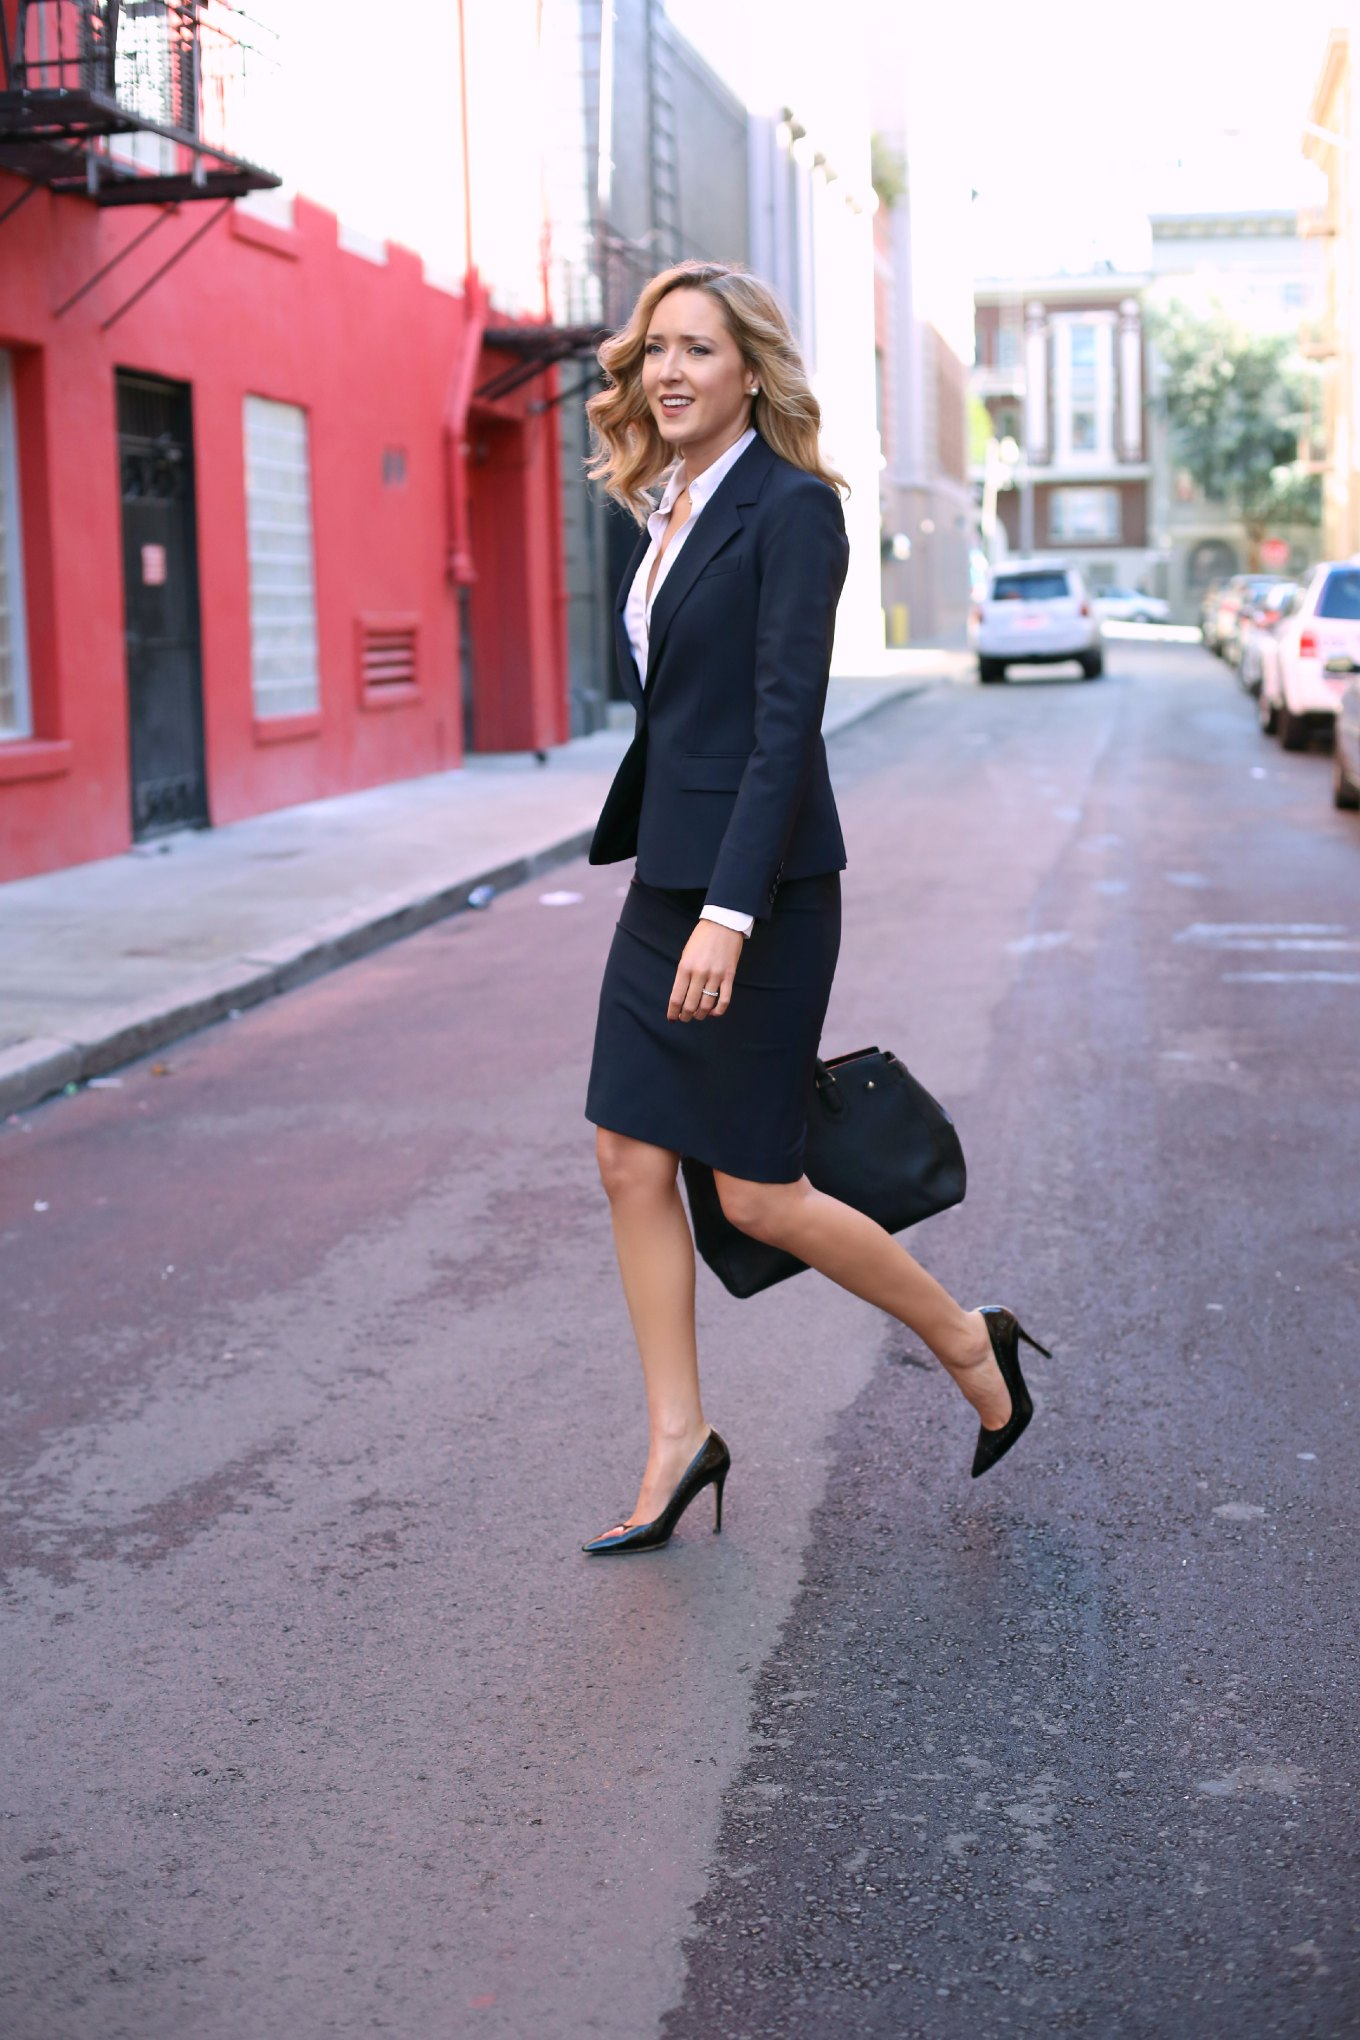 best-suit-work-wear-staples-essentials-every-business-woman-needs-classic-professional-what-to-wear-to-an-interview-attire-mary-orton-memorandum-fashion-style-blog-1  Work It: What To Wear From 9-5 best suit work wear staples essentials every business woman needs classic professional what to wear to an interview attire mary orton memorandum fashion style blog 1